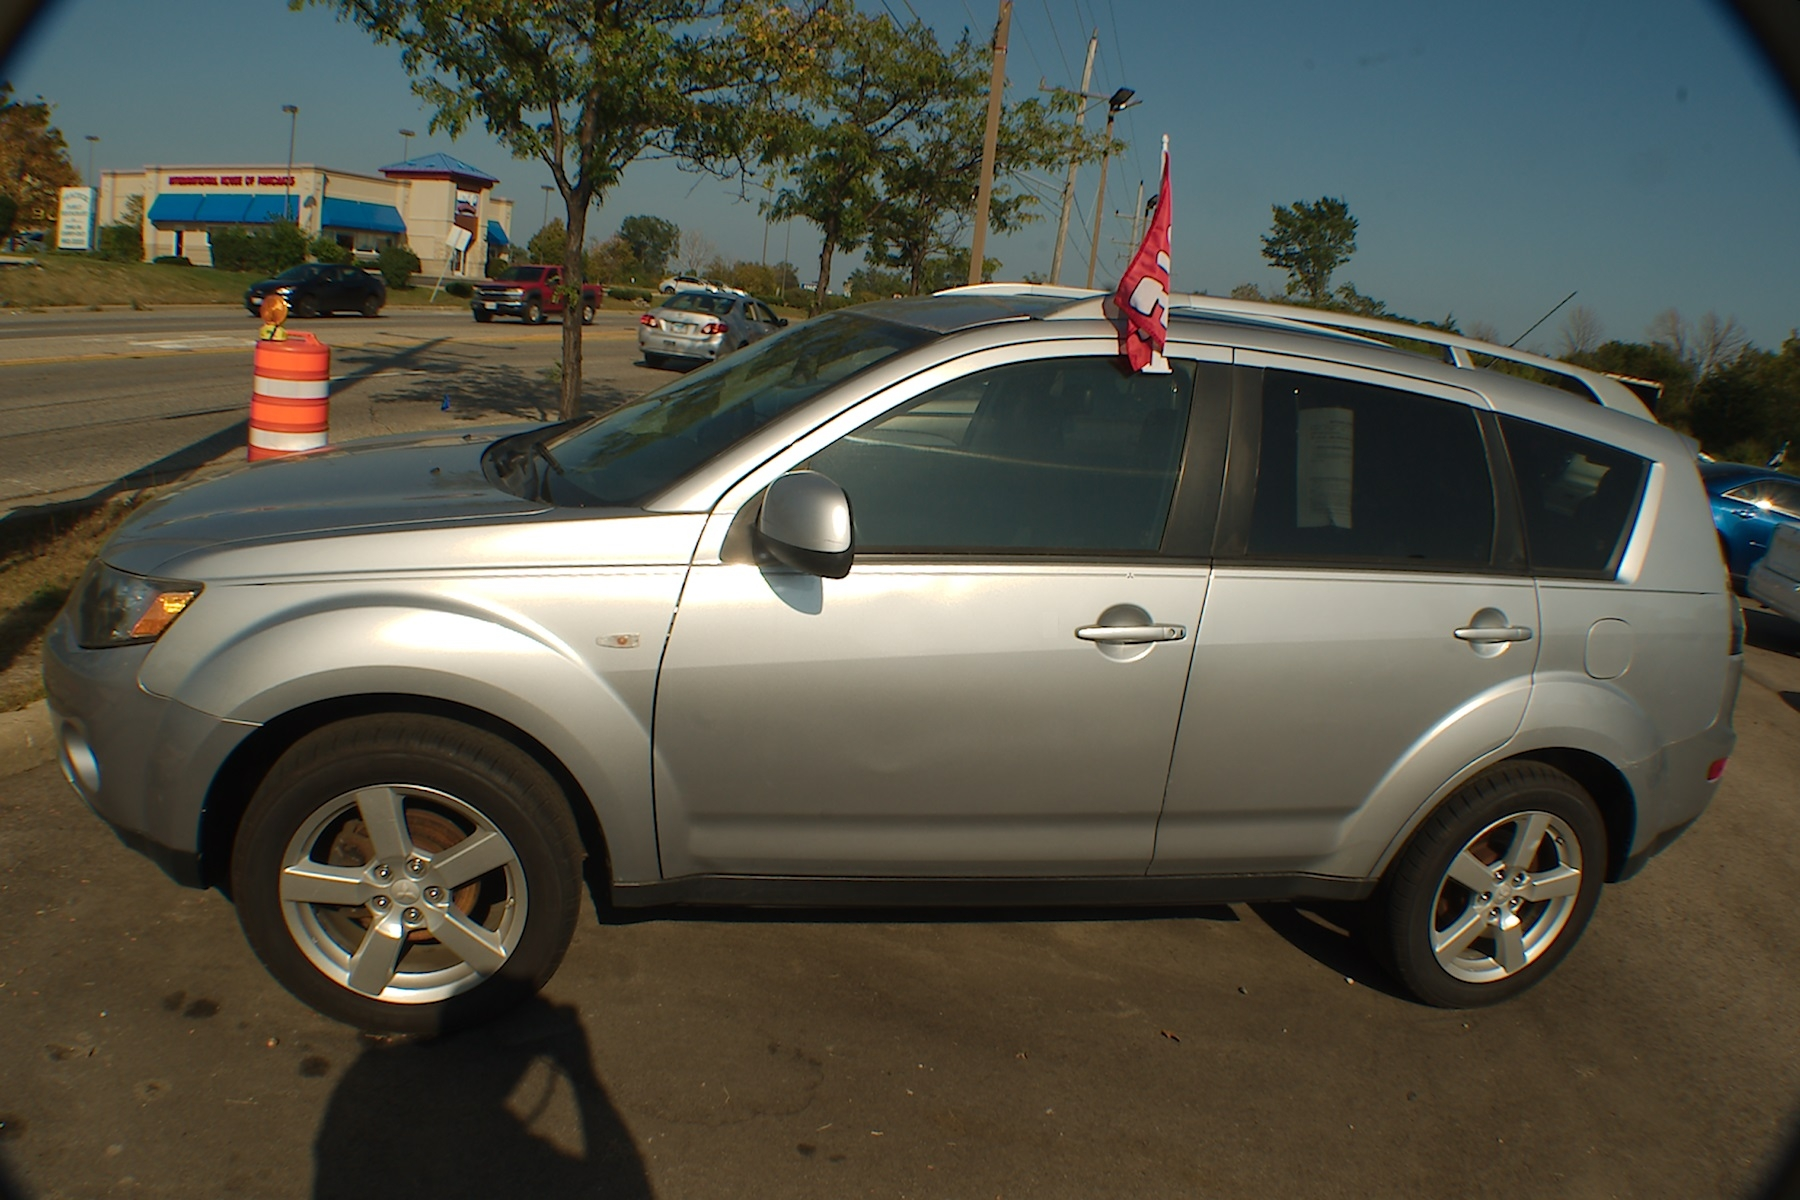 2007 Mitsubishi Outlander Silver SUV Wagon 4x4 Sale Antioch Zion Waukegan Lake County Illinois